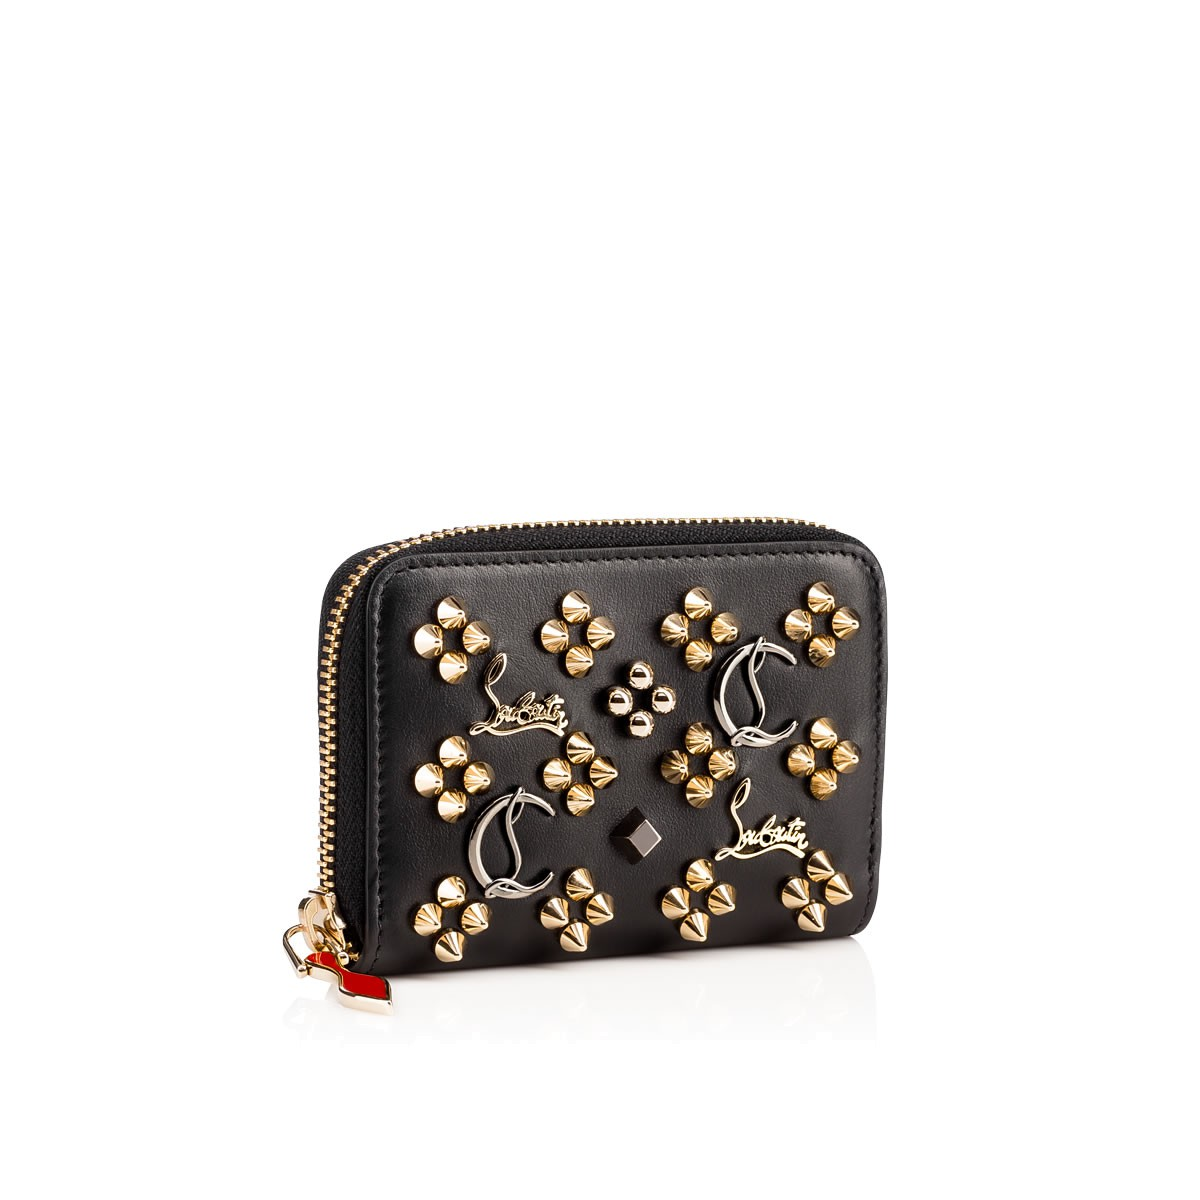 9d7223988d5 Panettone Coin Purse Black Calfskin - Accessories - Christian Louboutin